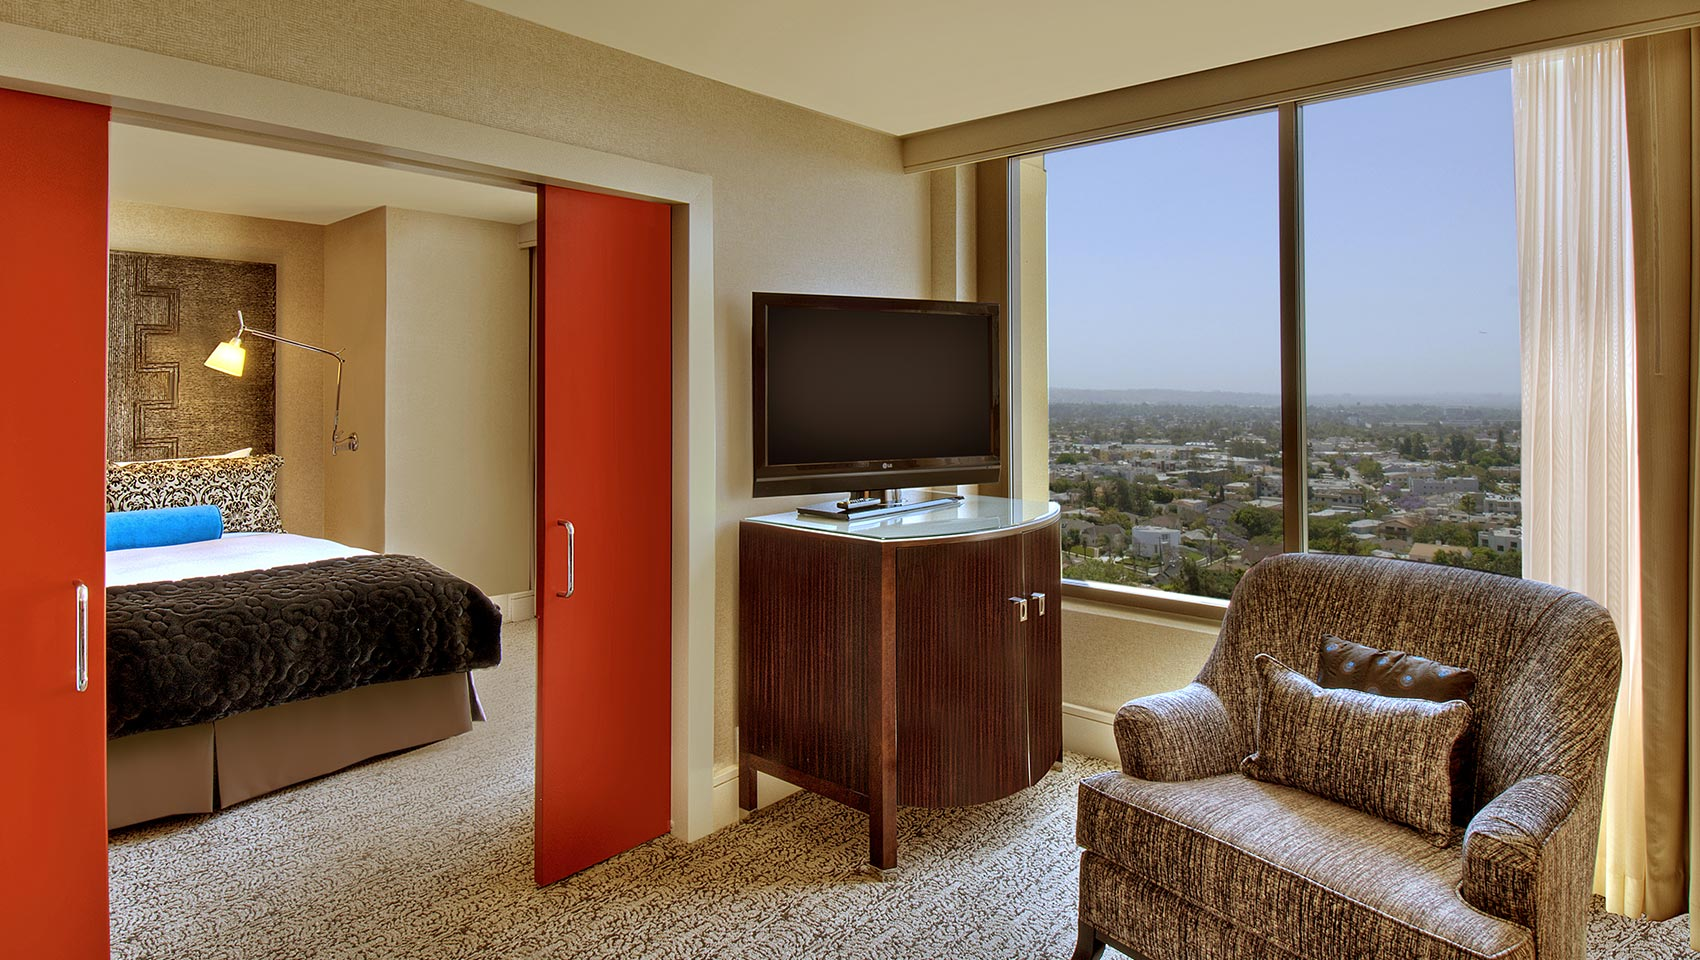 HOTEL PALOMAR - LOS ANGELES/WESTWOOD - 10740 Wilshire BoulevardLos Angeles, CA 90024310.475.8711Map LinkTripAdvisor Reviews*Request special Adler-Weiner Research rate when booking ($271, based on availability)